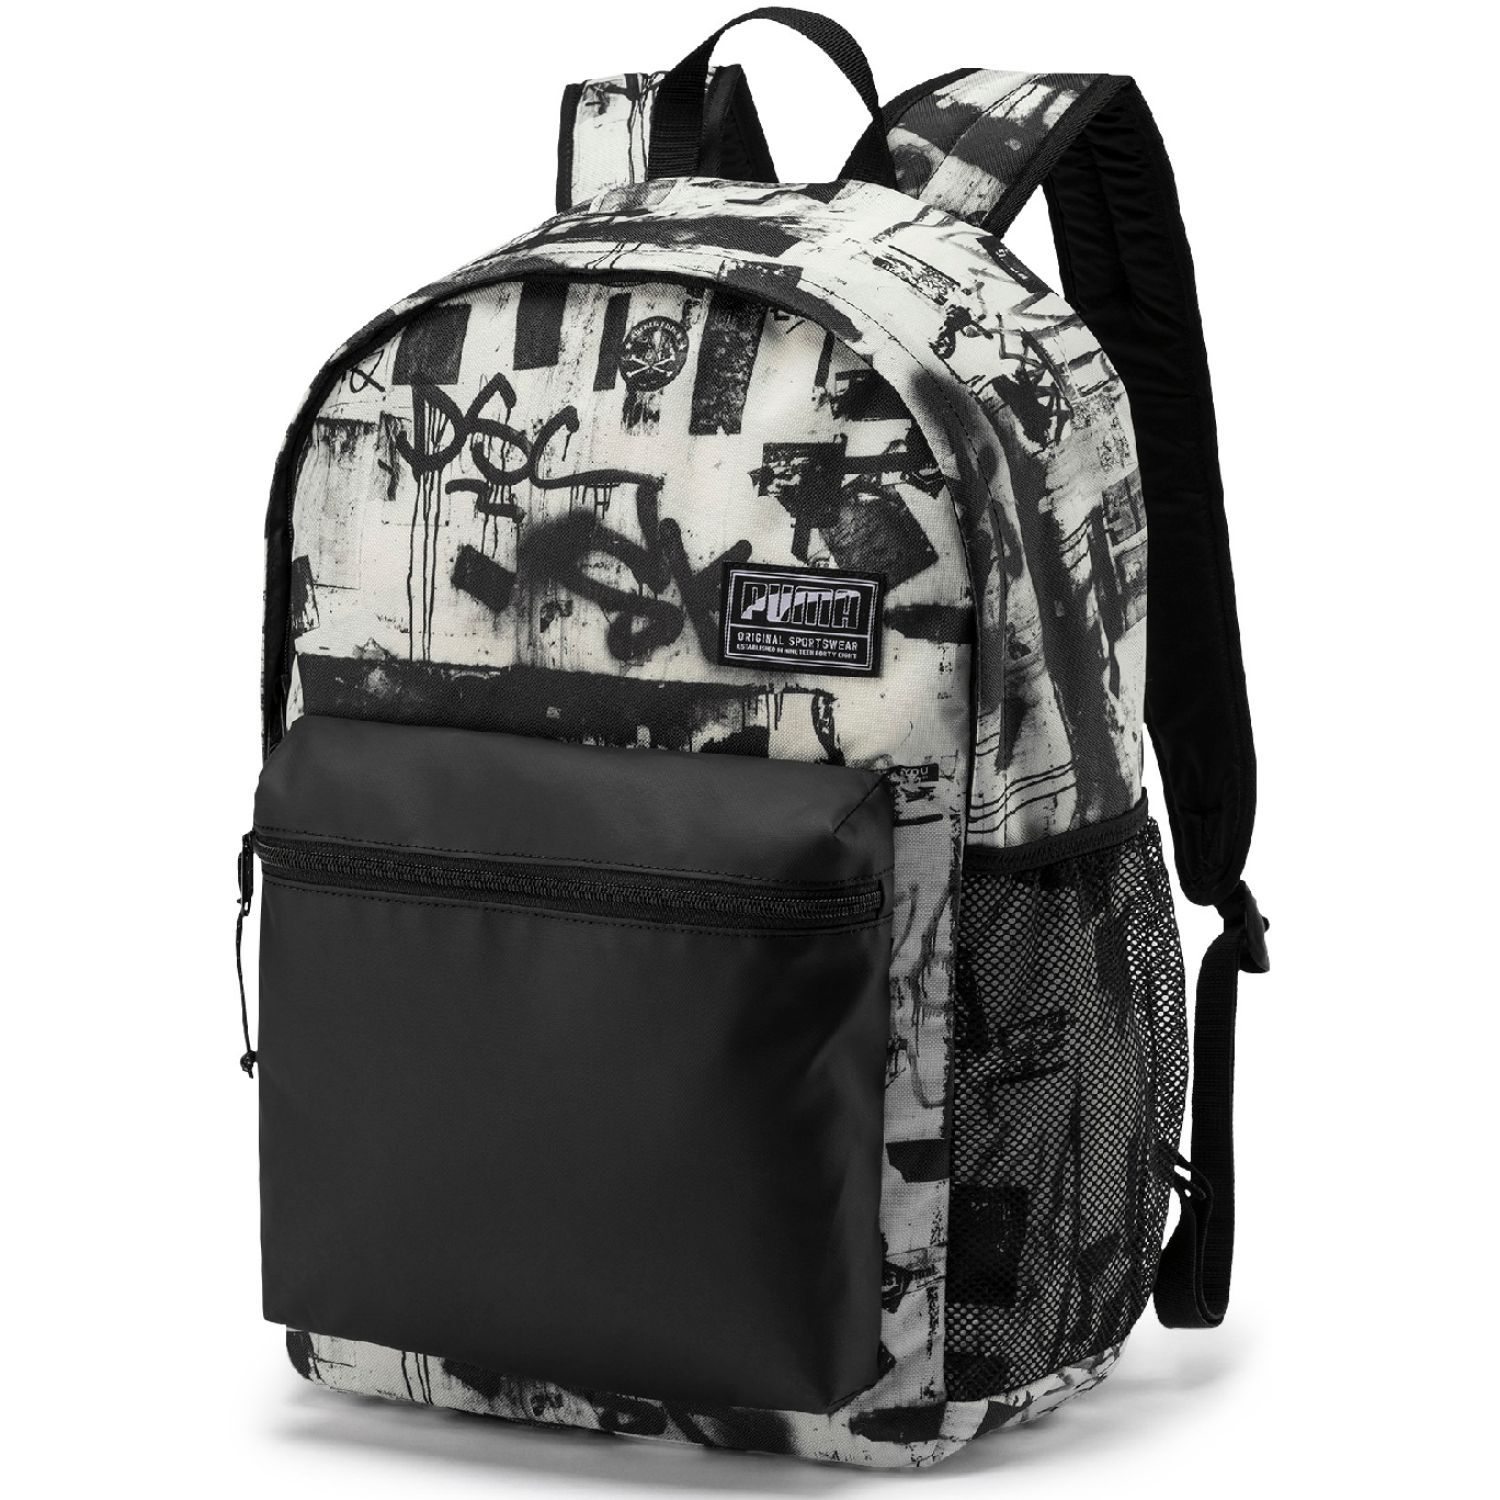 Puma puma academy backpack Blanco / negro Mochilas Multipropósitos